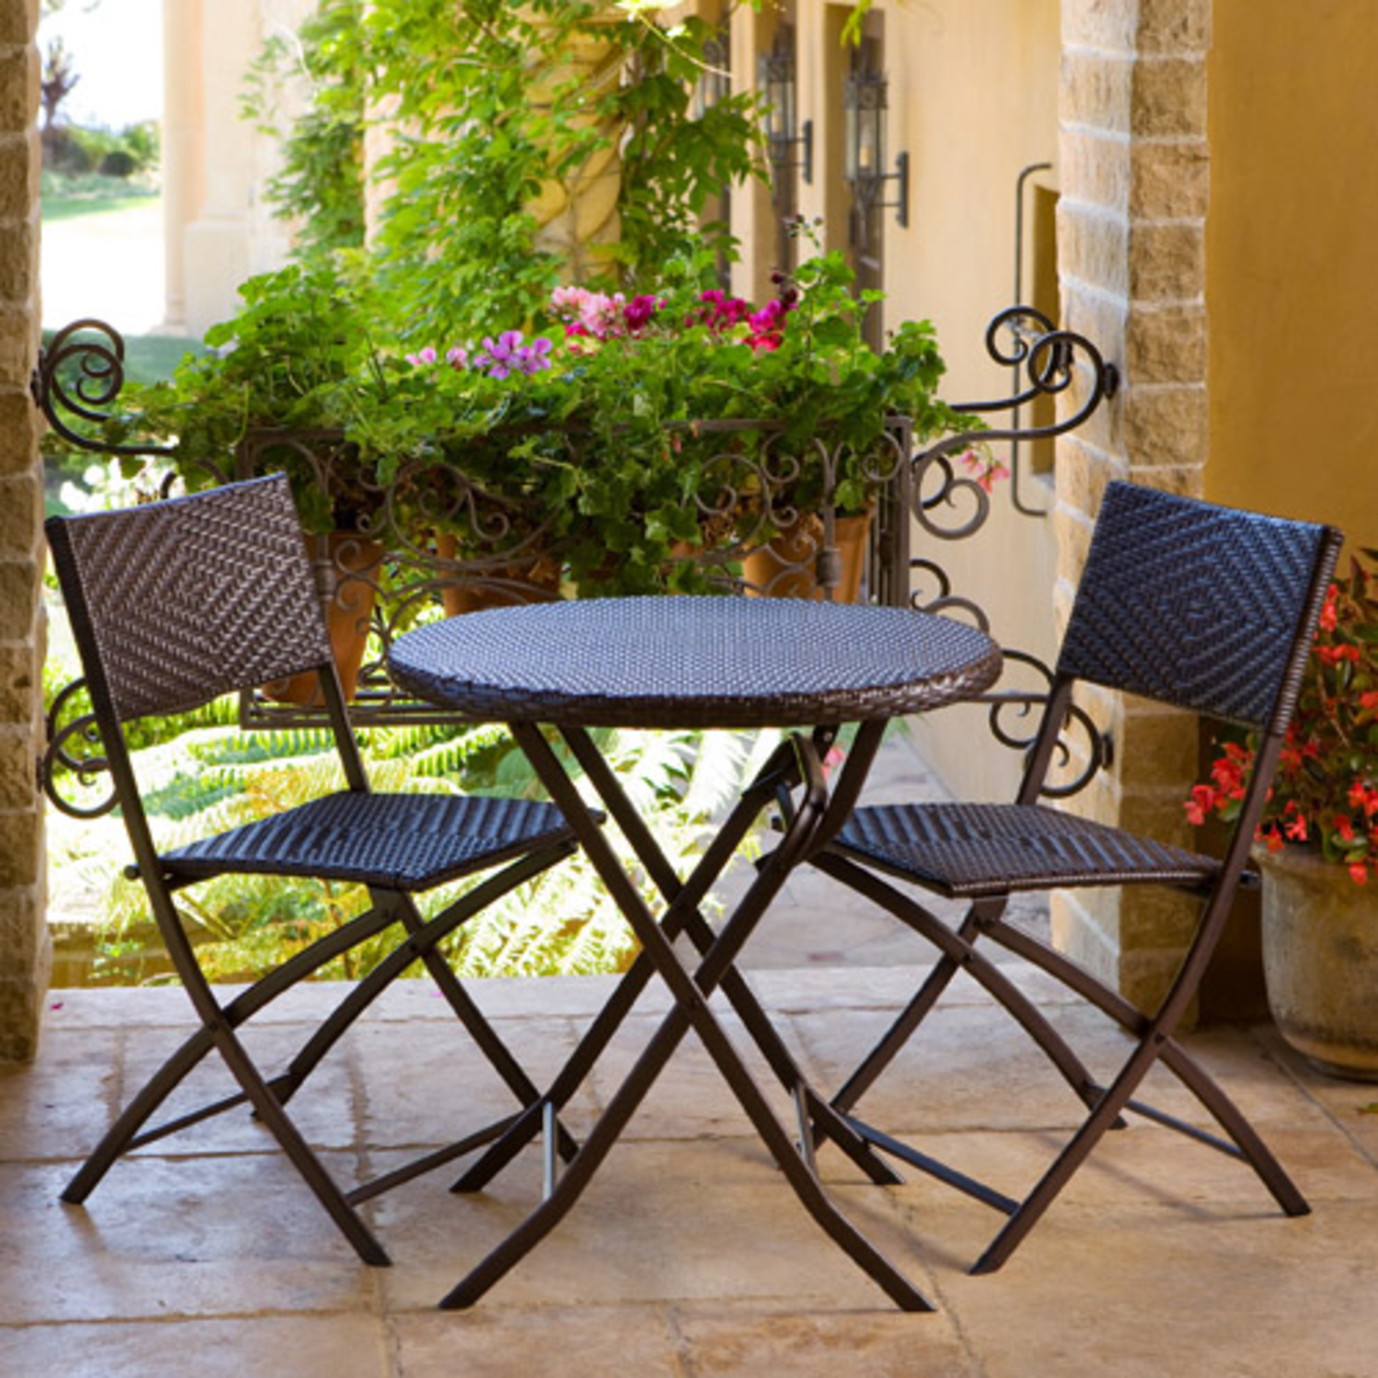 Rattan Table And Chairs Garden Furniture Hand woven rattan 3pc bistro set rst brands hand woven rattan 3pc bistro set workwithnaturefo